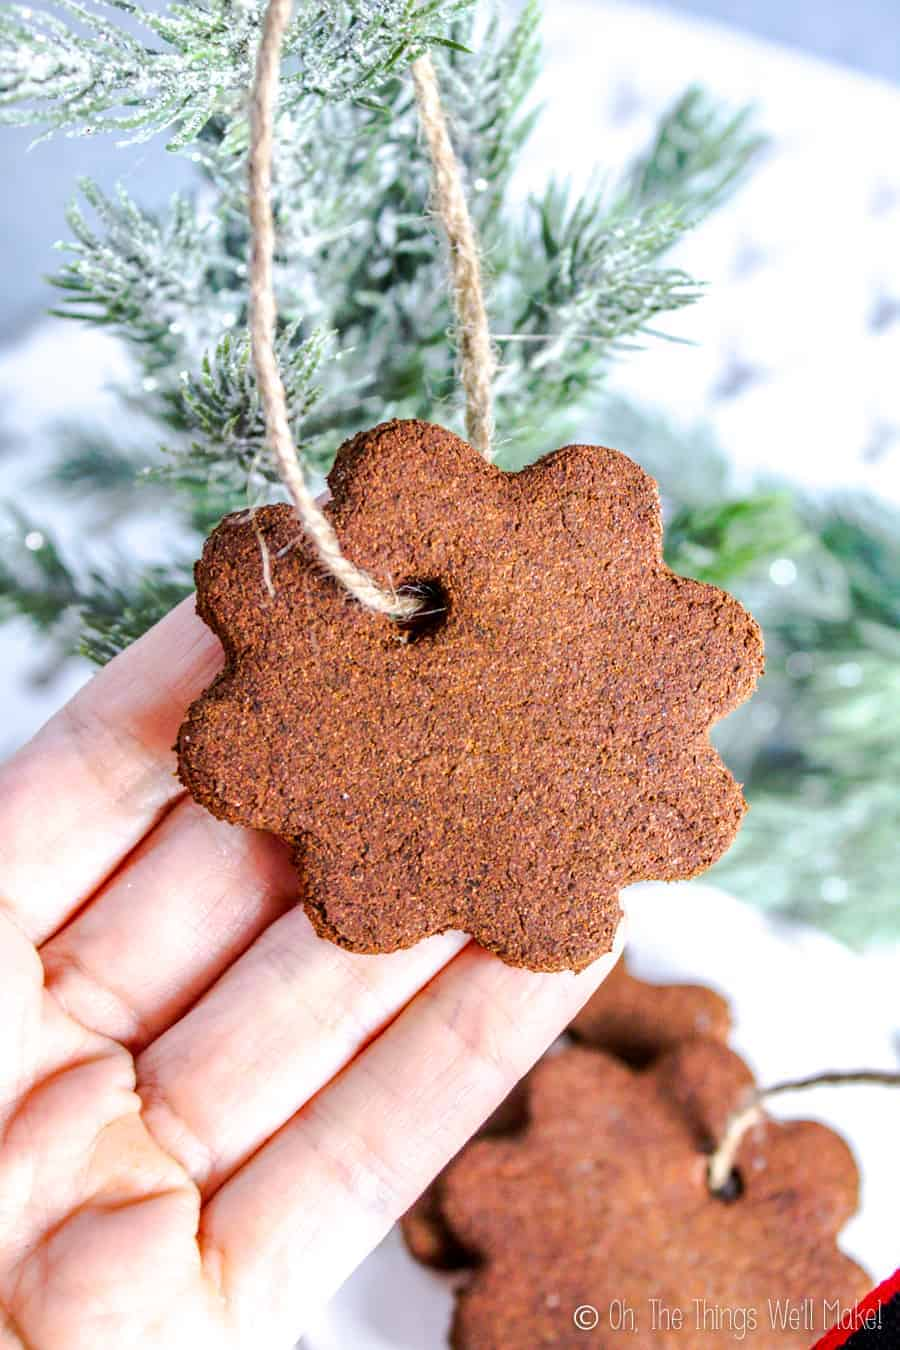 A hand lifting up a flower-shaped cinnamon applesauce ornament hanging on a Christmas tree